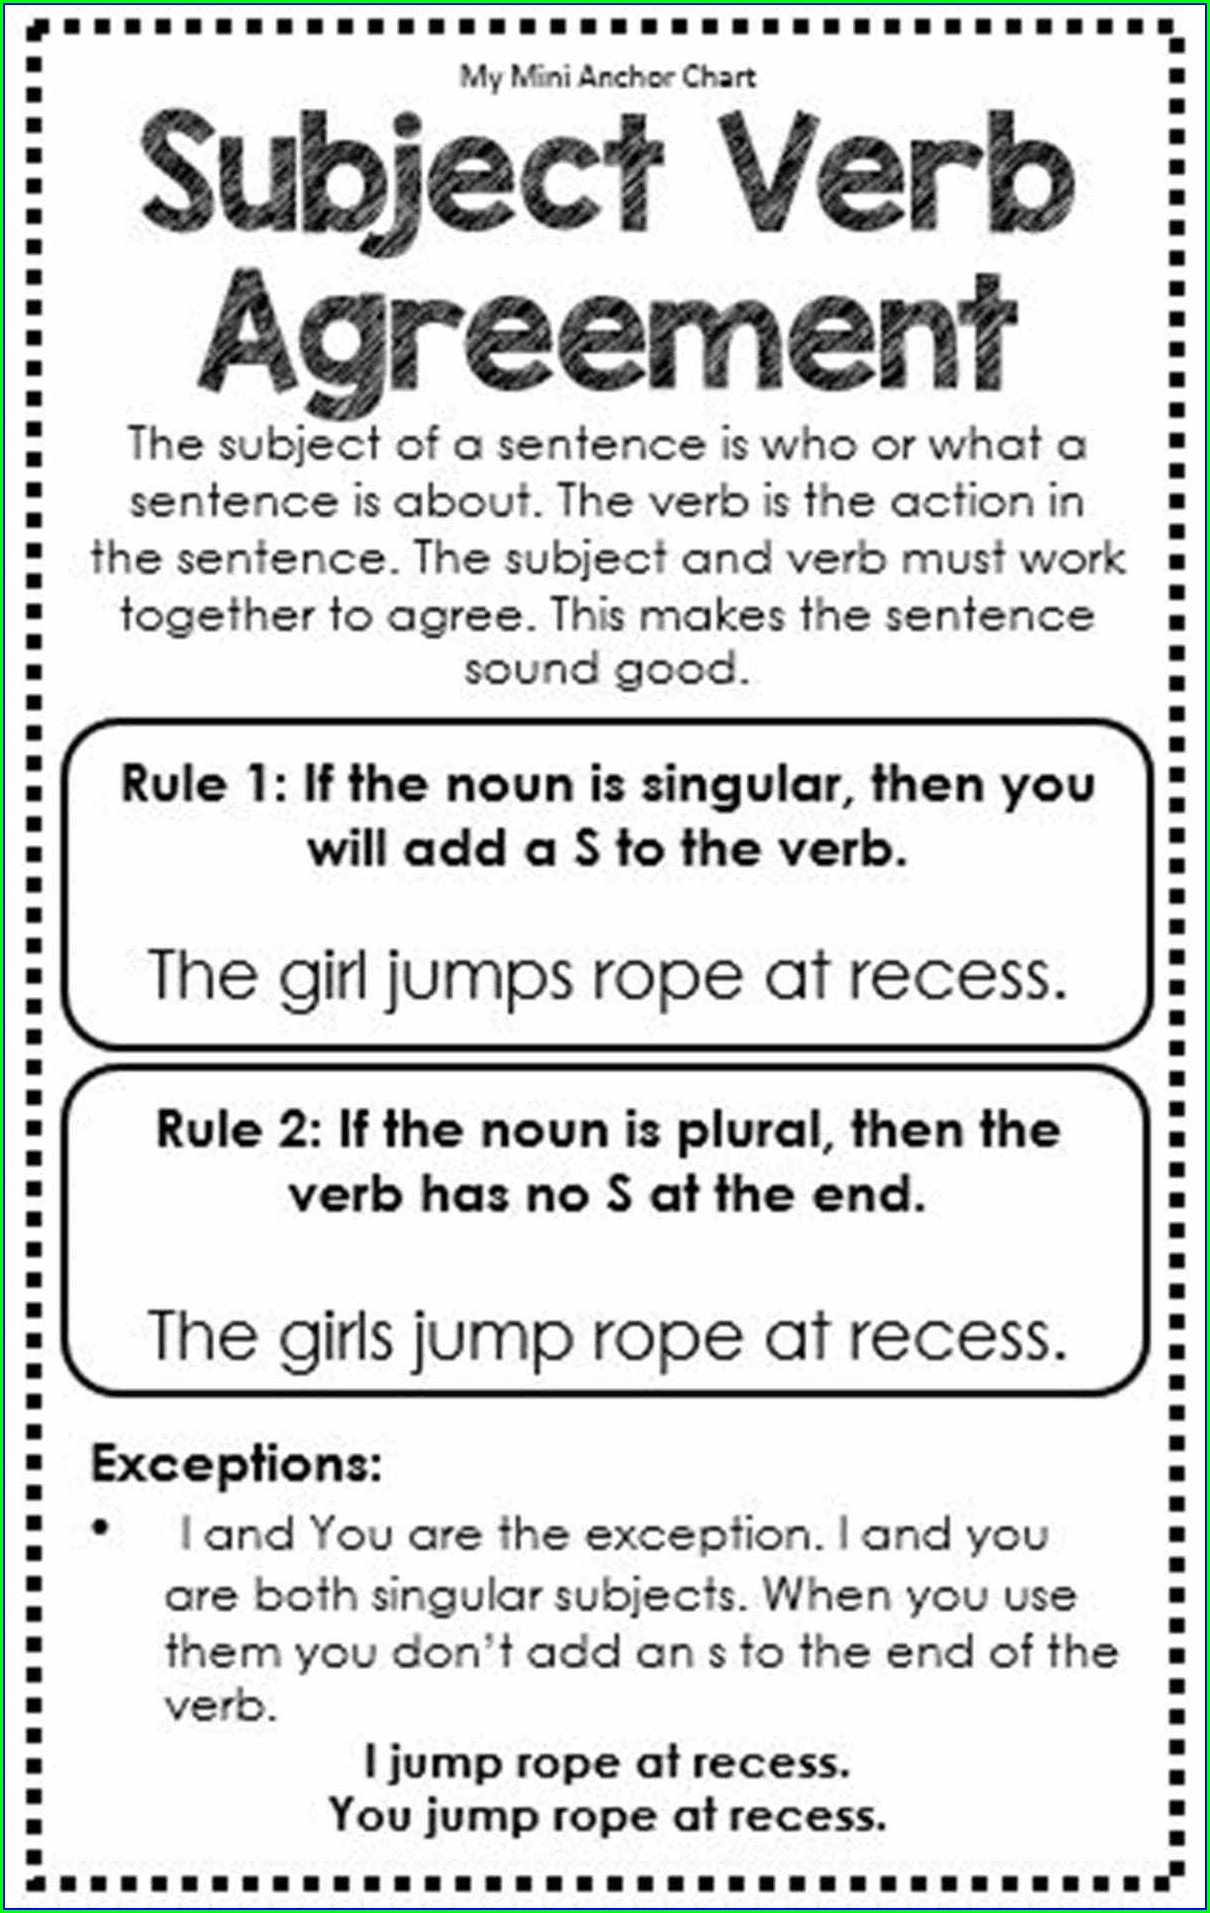 Subject Verb Agreement Identification Quiz